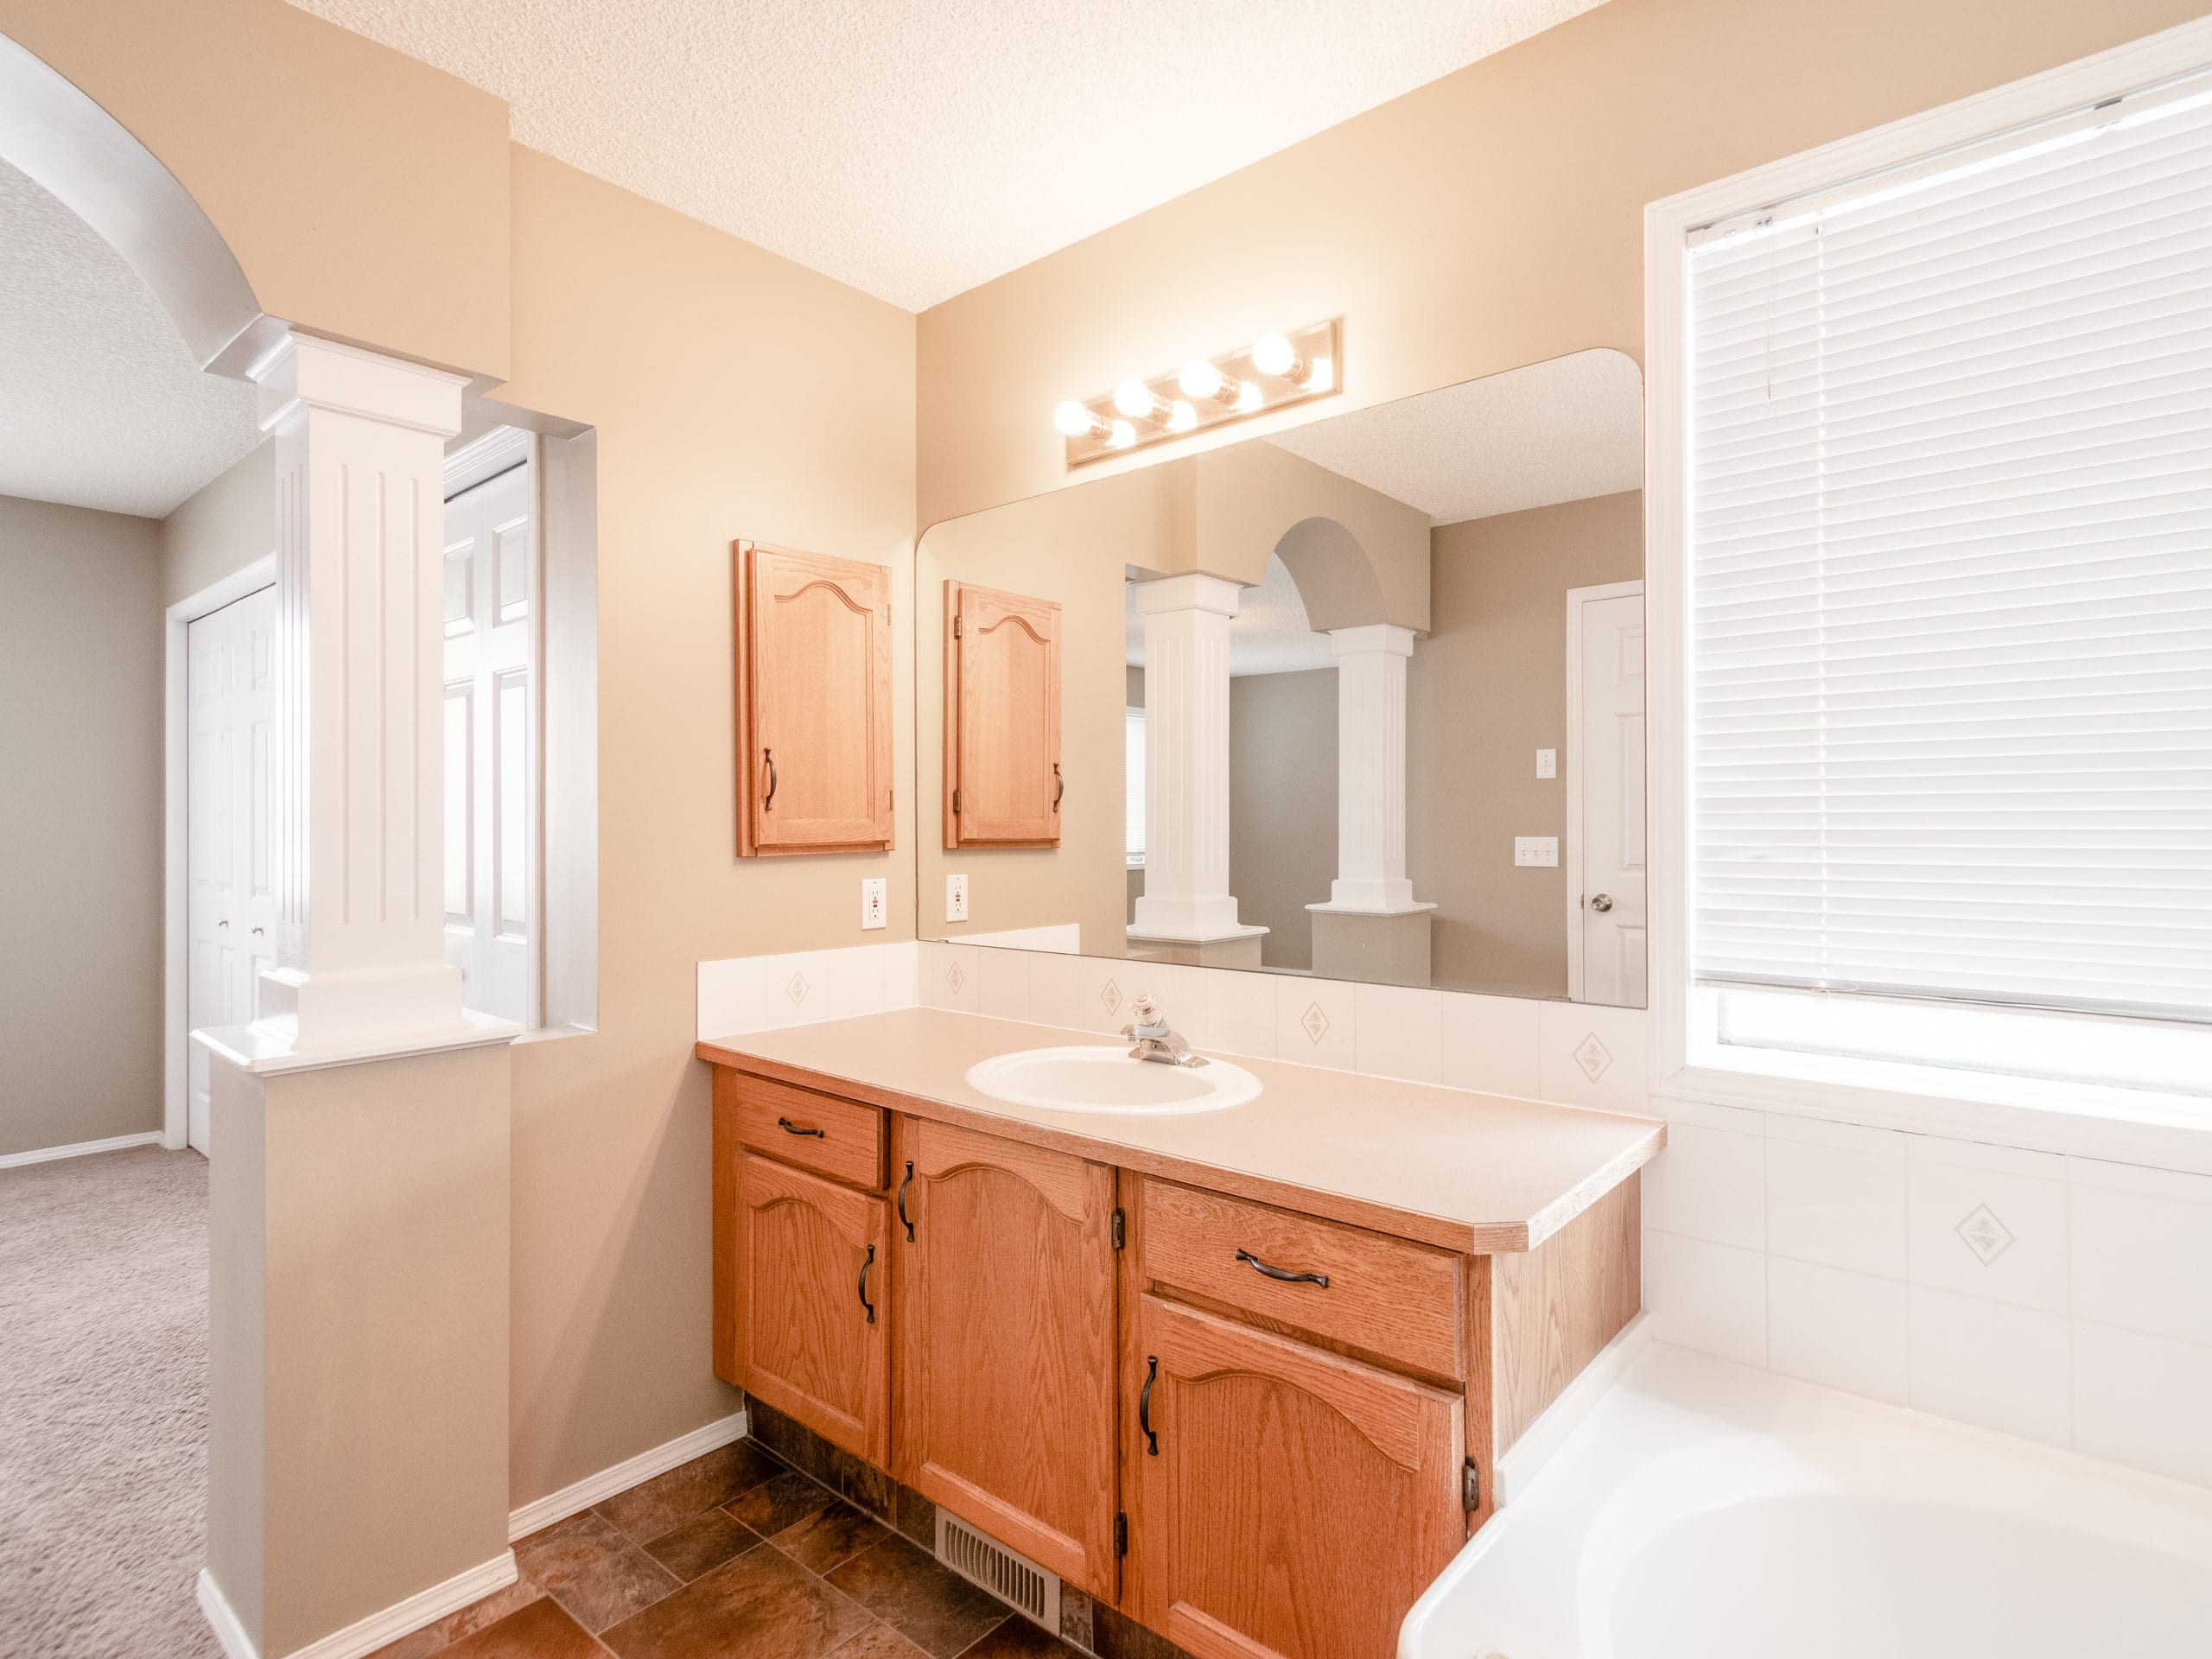 Hello Gorgeous - 143 Woodside Road NW, Airdrie AB. - Tara Molina Real Estate (27 of 54)